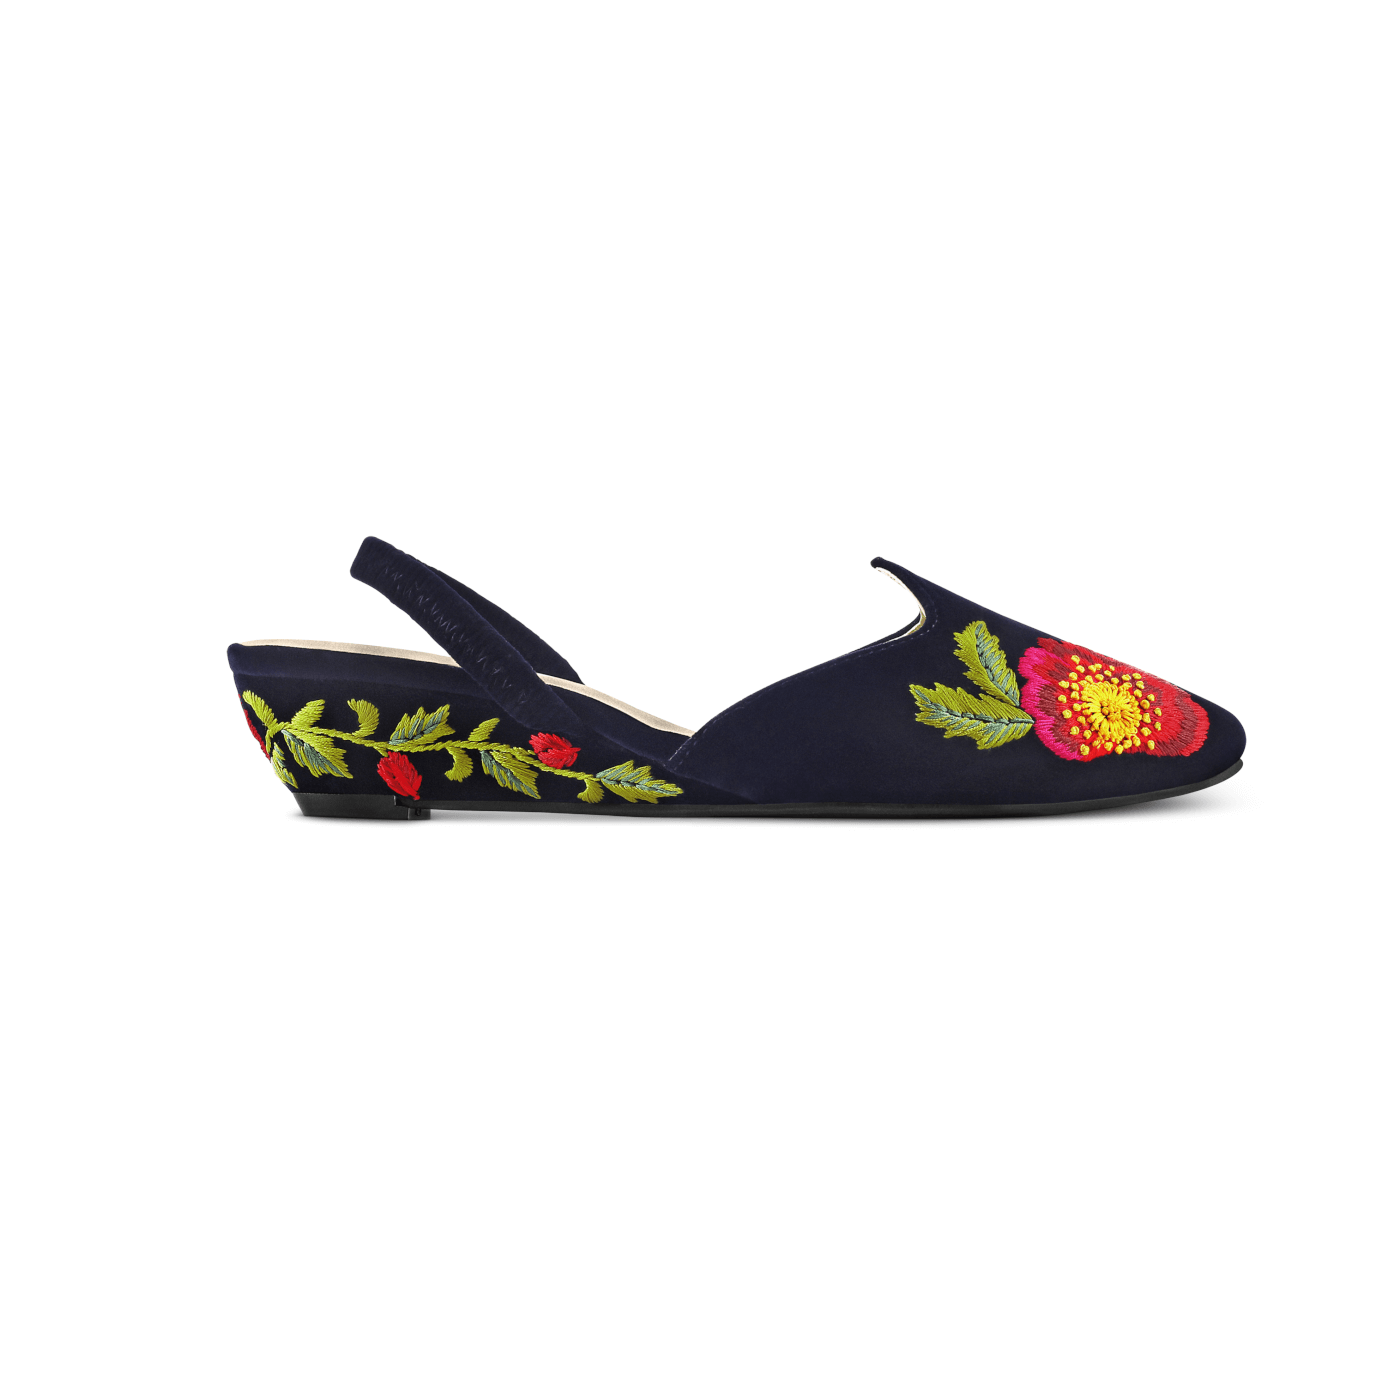 ec511b9bbd91 Hand-embroidered Rungg shoes are made with premium vegan leather that is  durable